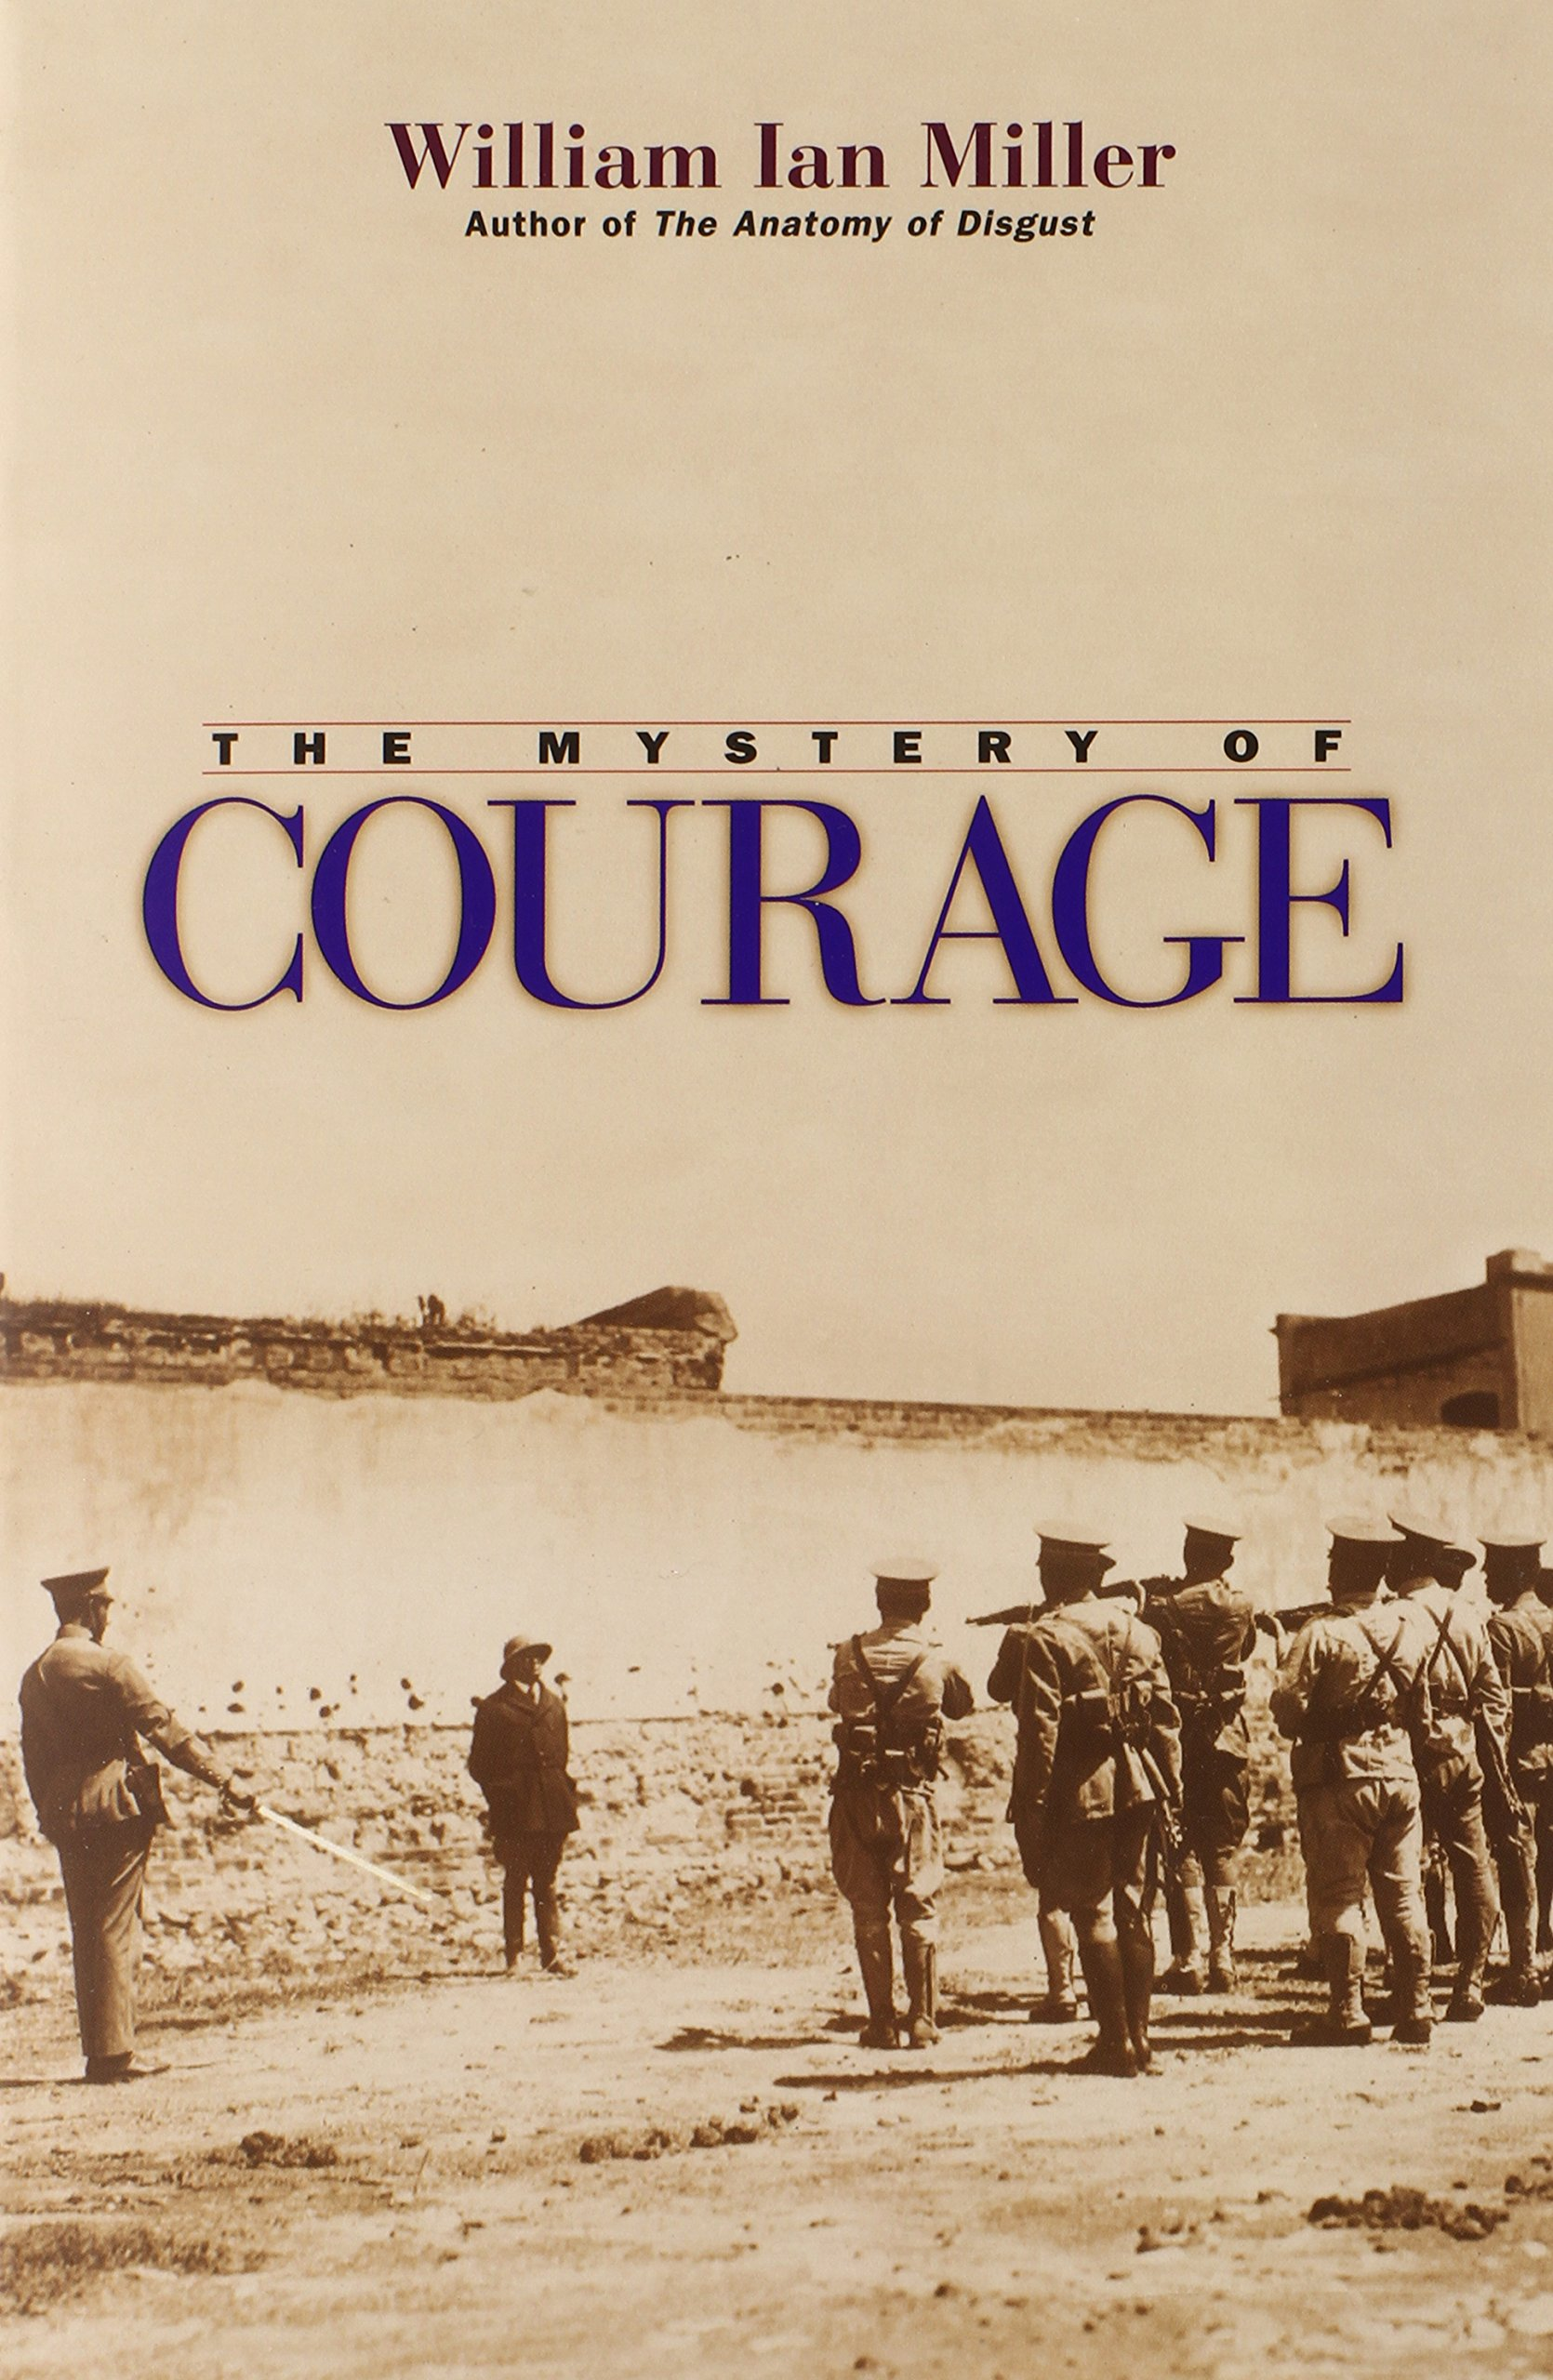 The Mystery of Courage: William Ian Miller: 9780674008267: Amazon ...